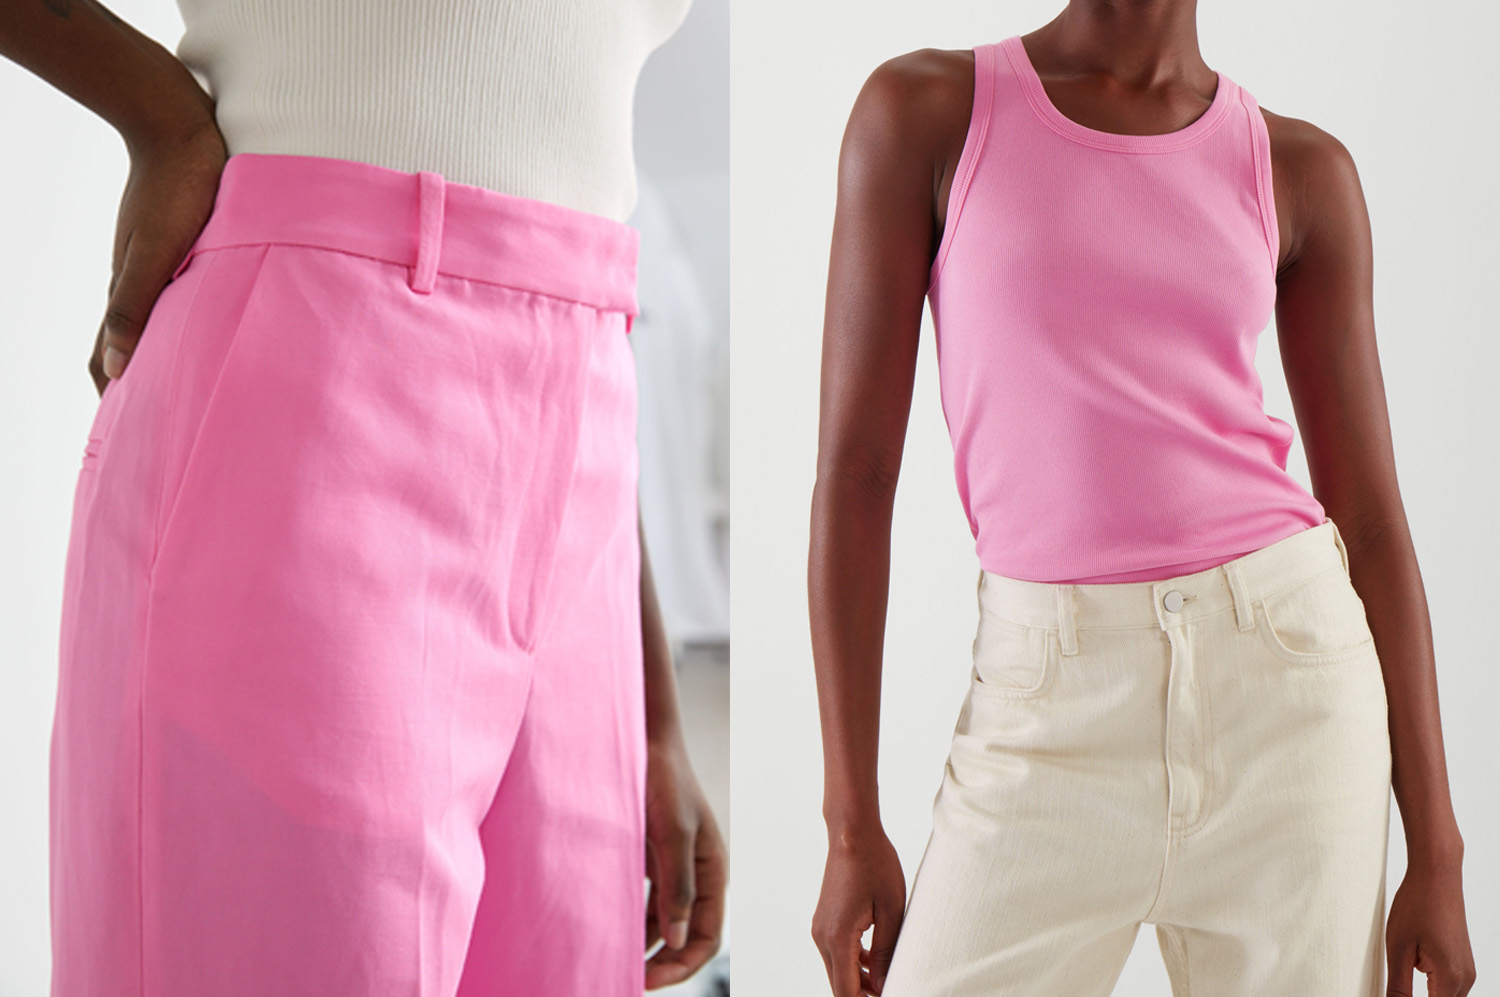 8 Outfit Ideas with a Pop of Pink